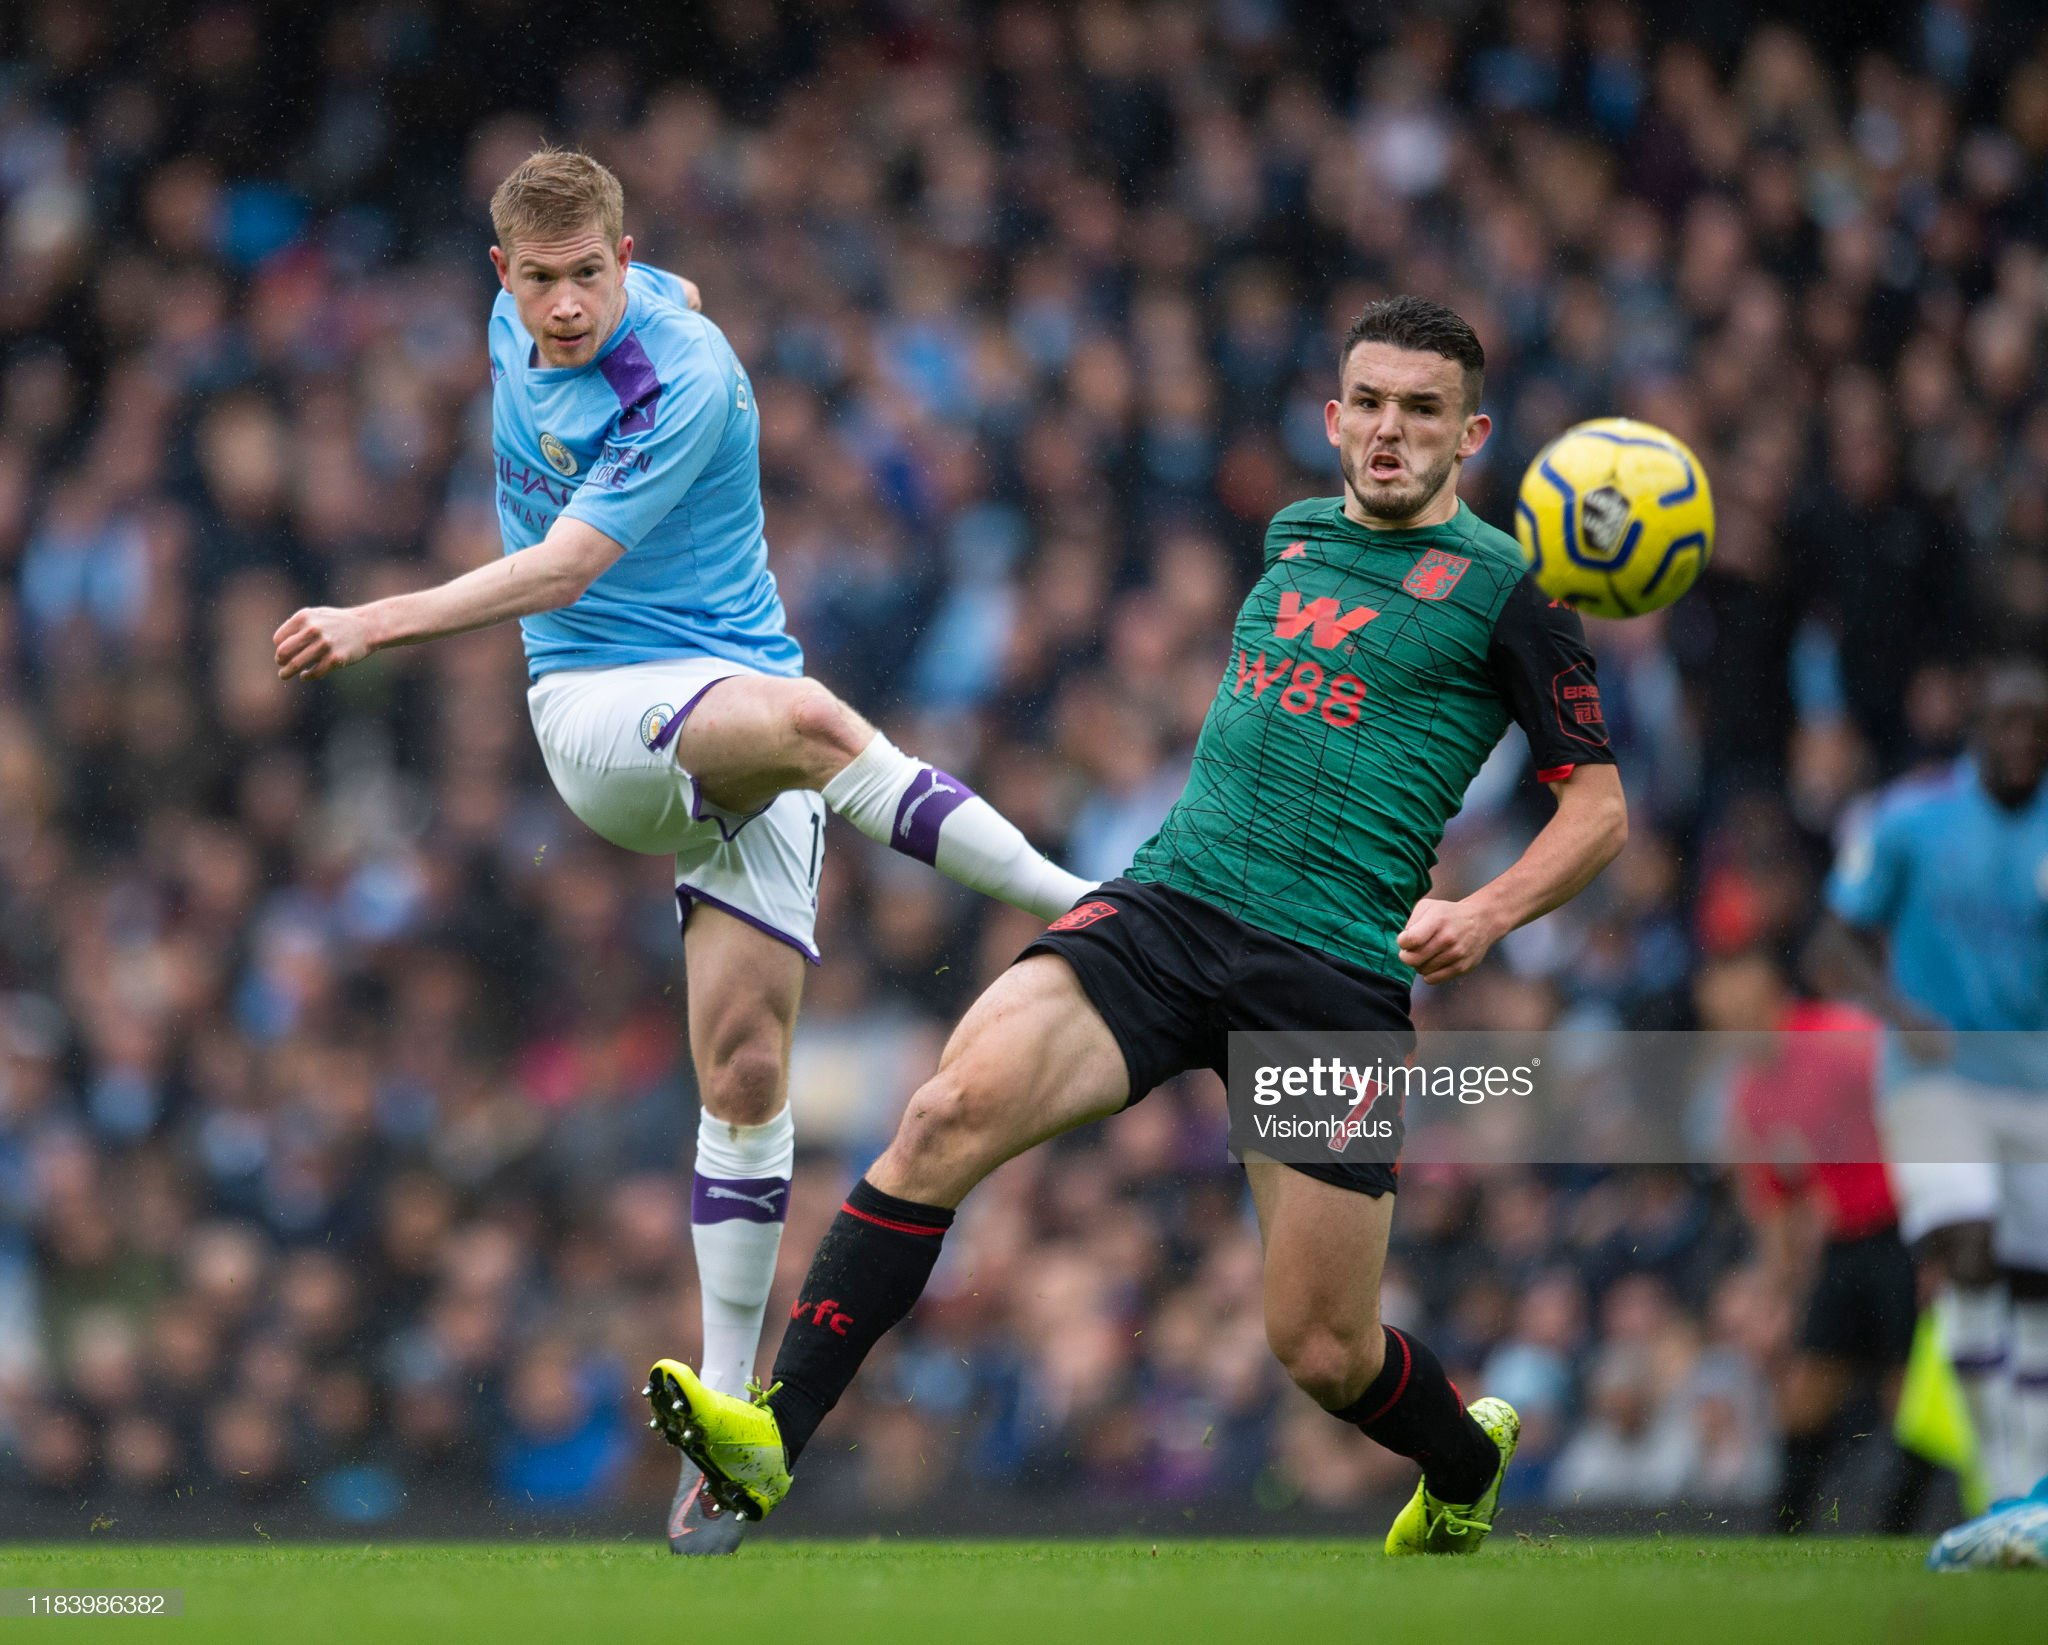 Aston Villa v Manchester City preview, prediction and odds